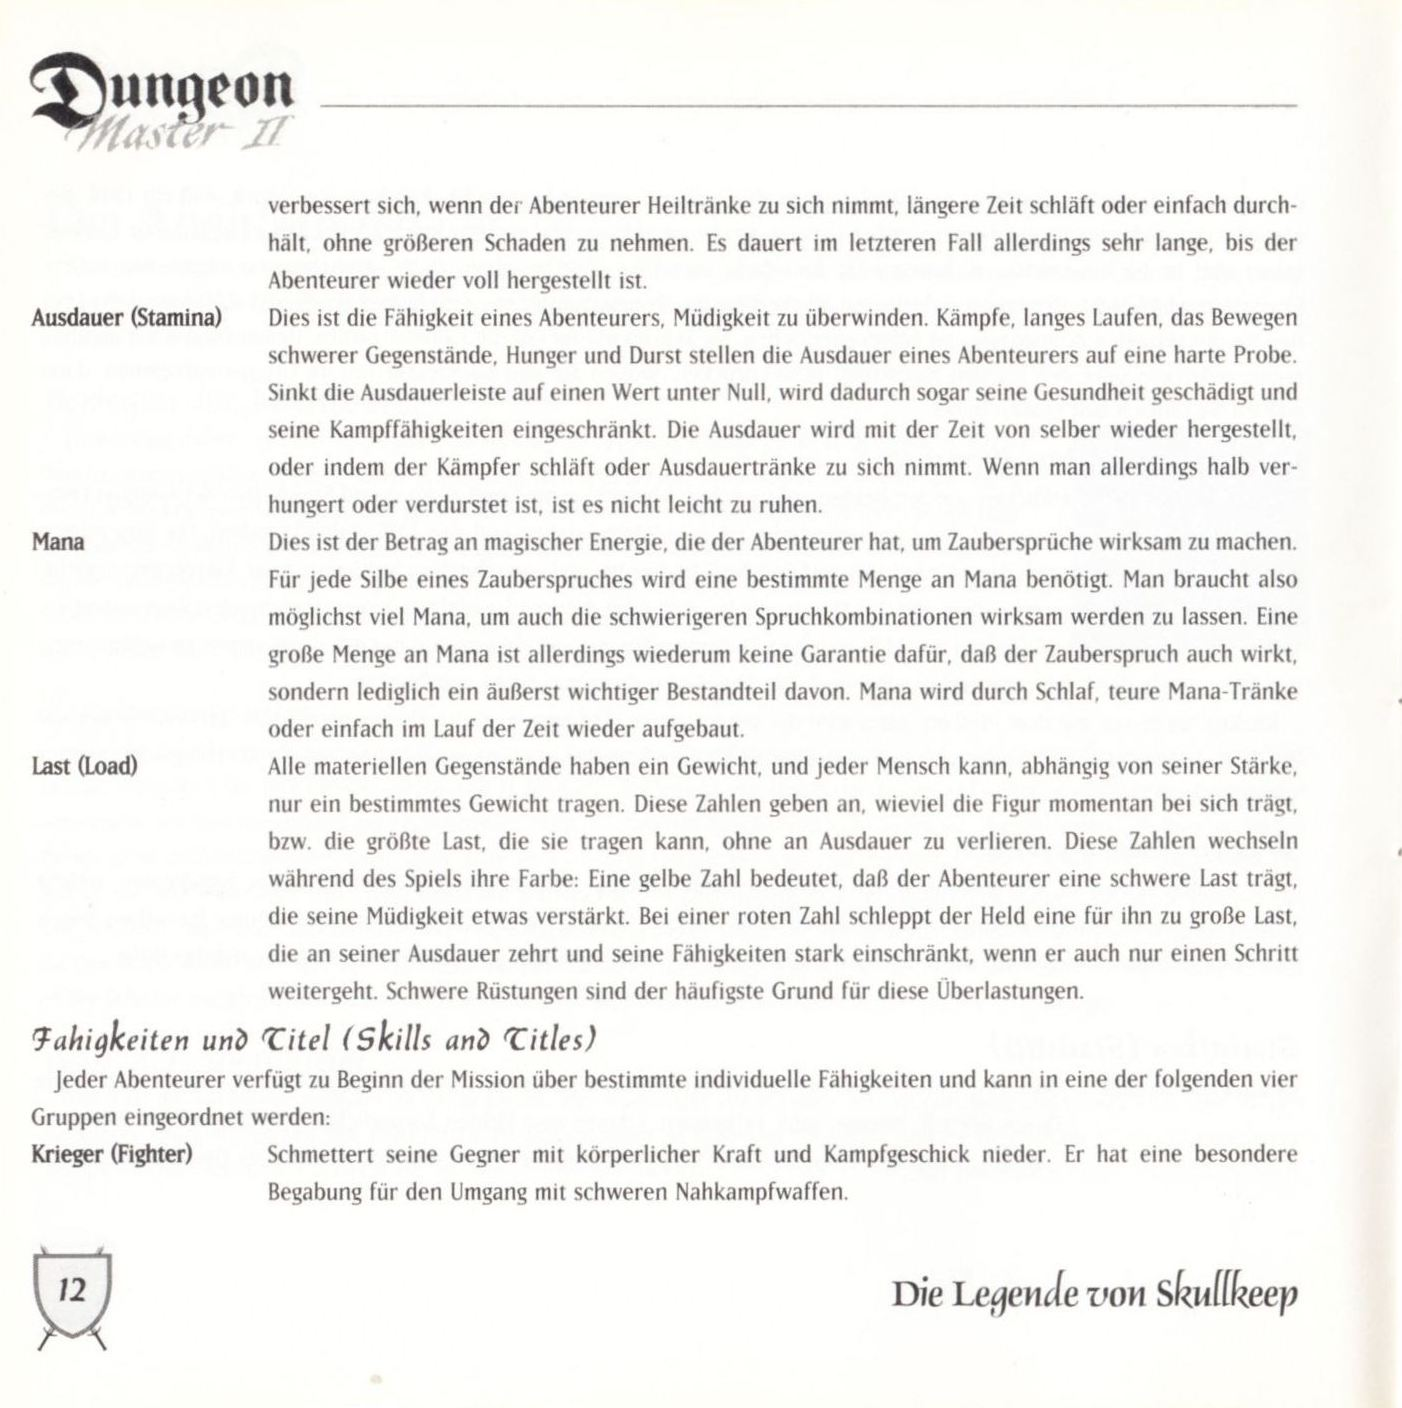 Game - Dungeon Master II - DE - PC - Blackmarket With Booklet - Booklet - Page 014 - Scan